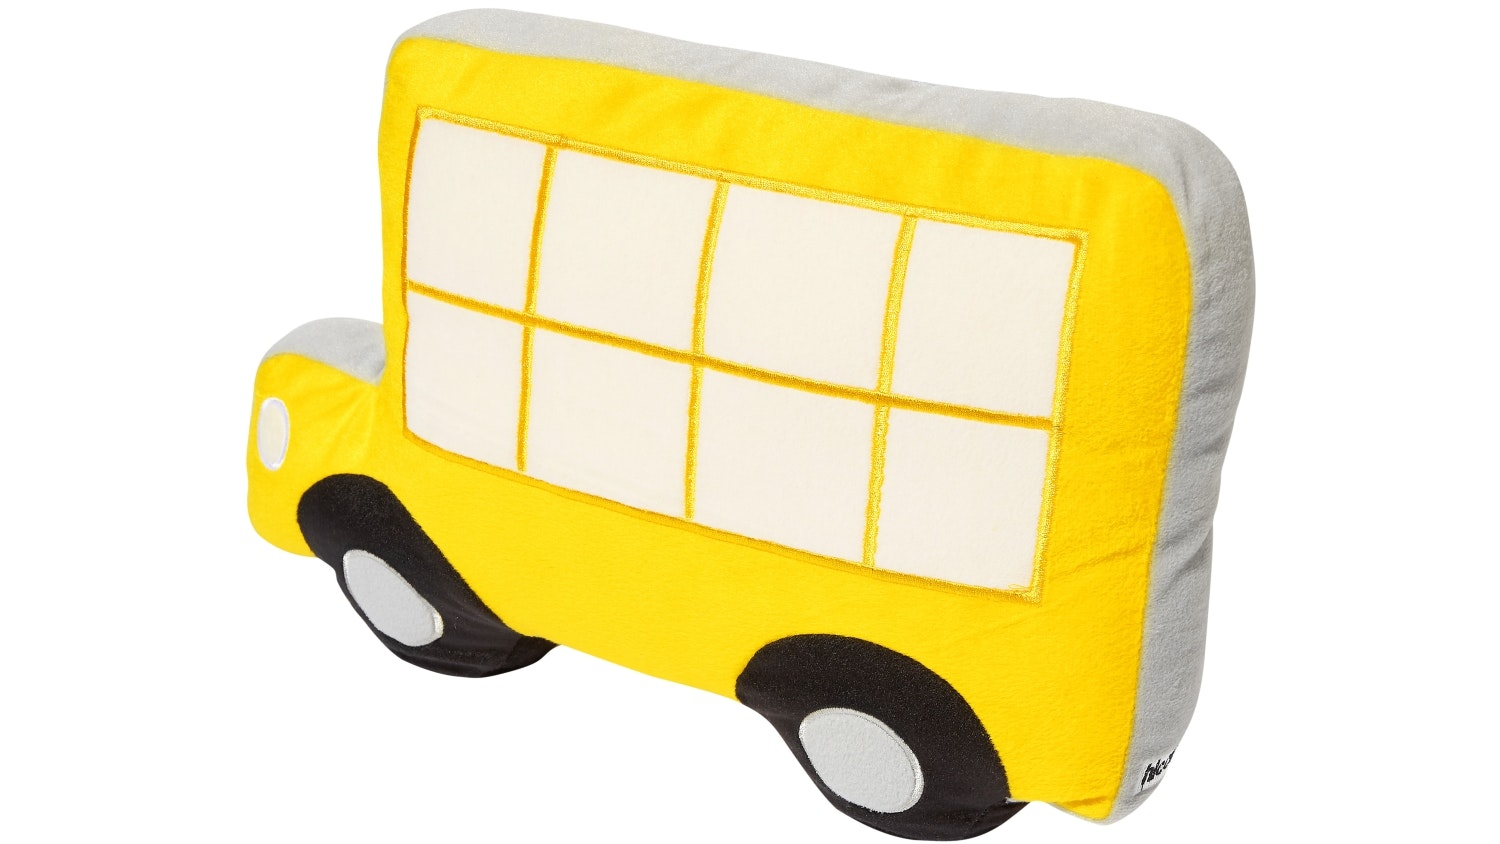 Hiccups Town Bus Novelty Cushion - Yellow & Blue